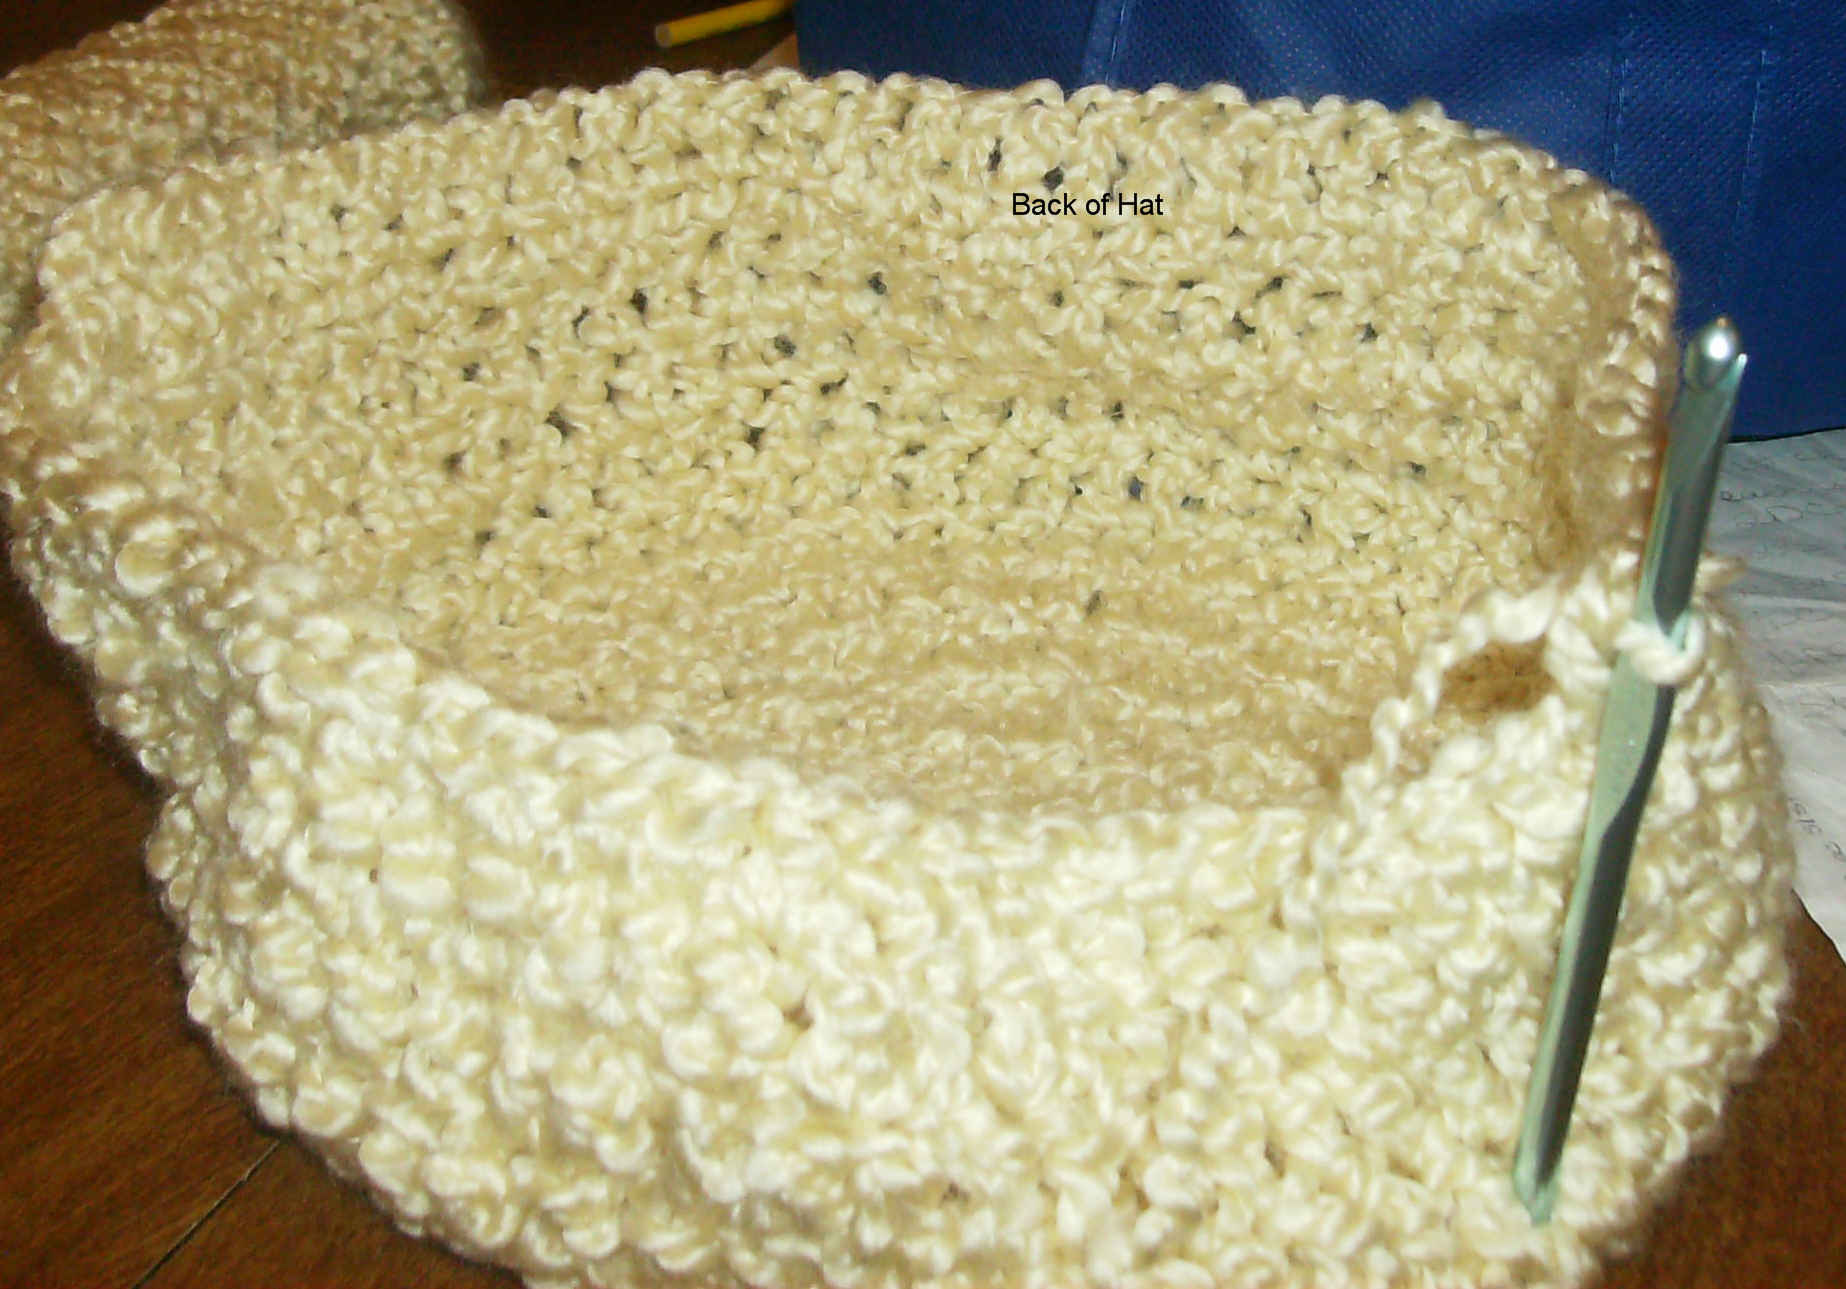 Picture of Making the Back of the Hat